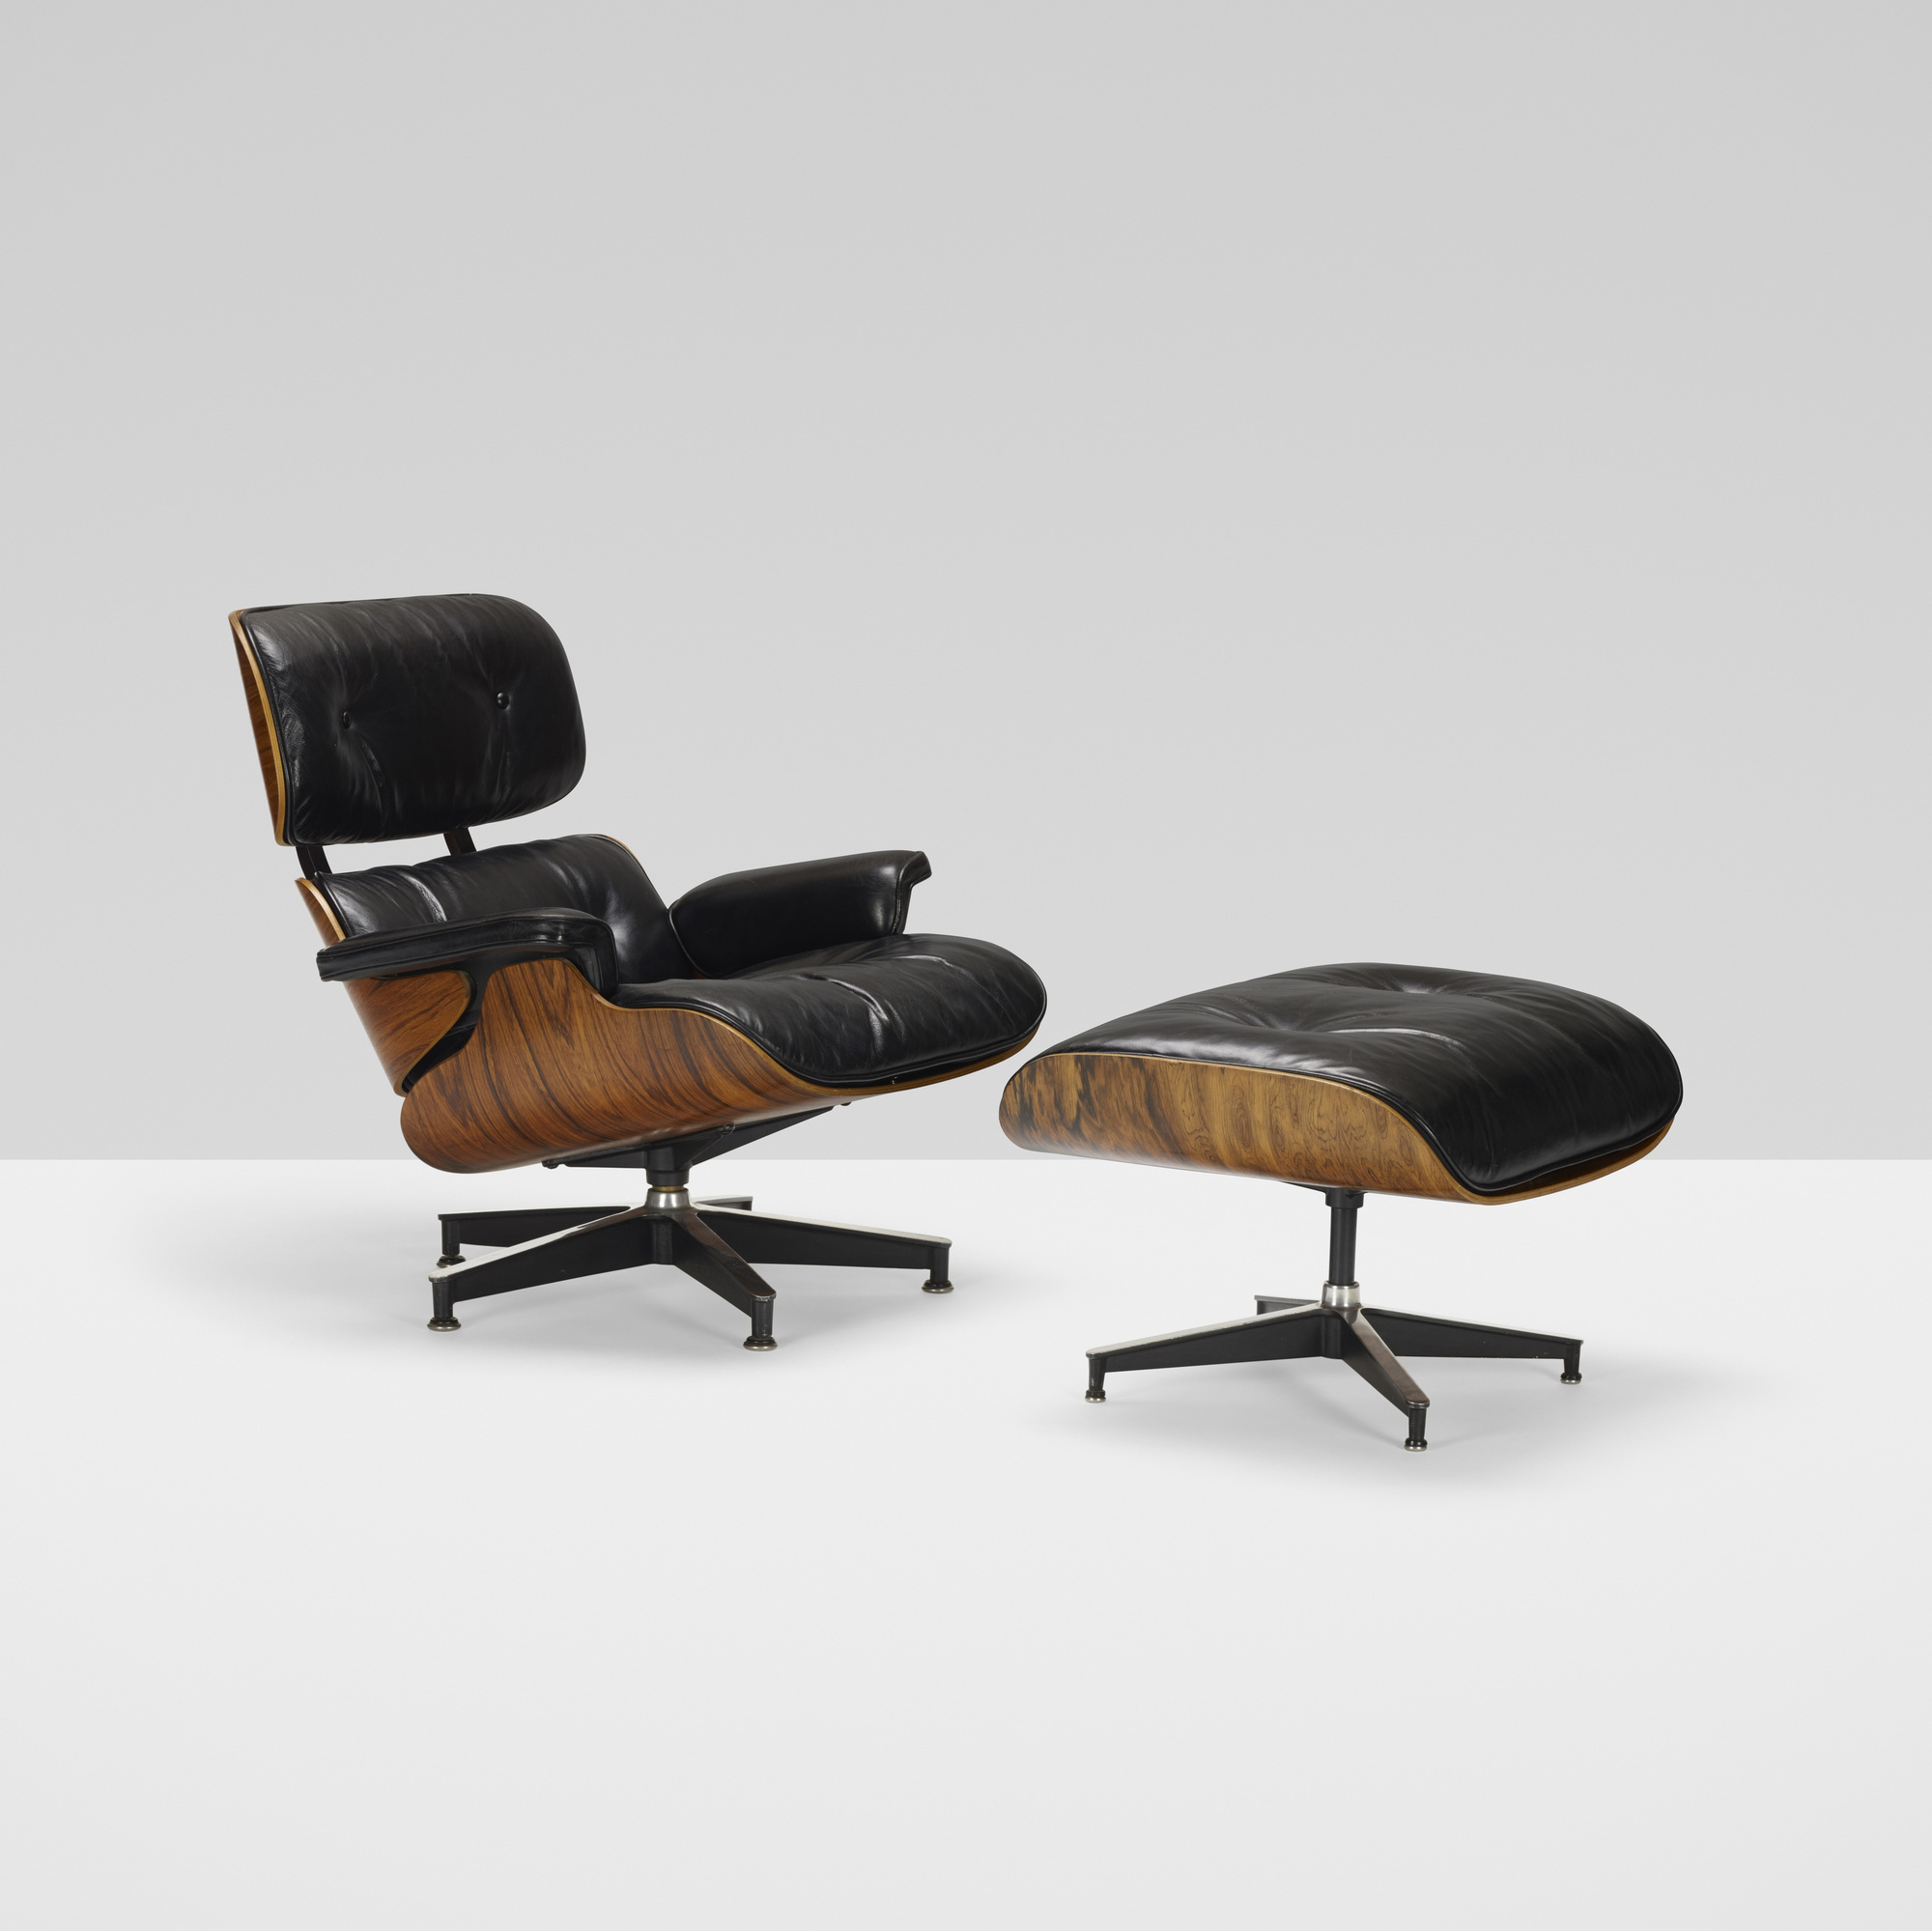 339: Charles and Ray Eames / 670 lounge chair and 671 ottoman (2 of 4)